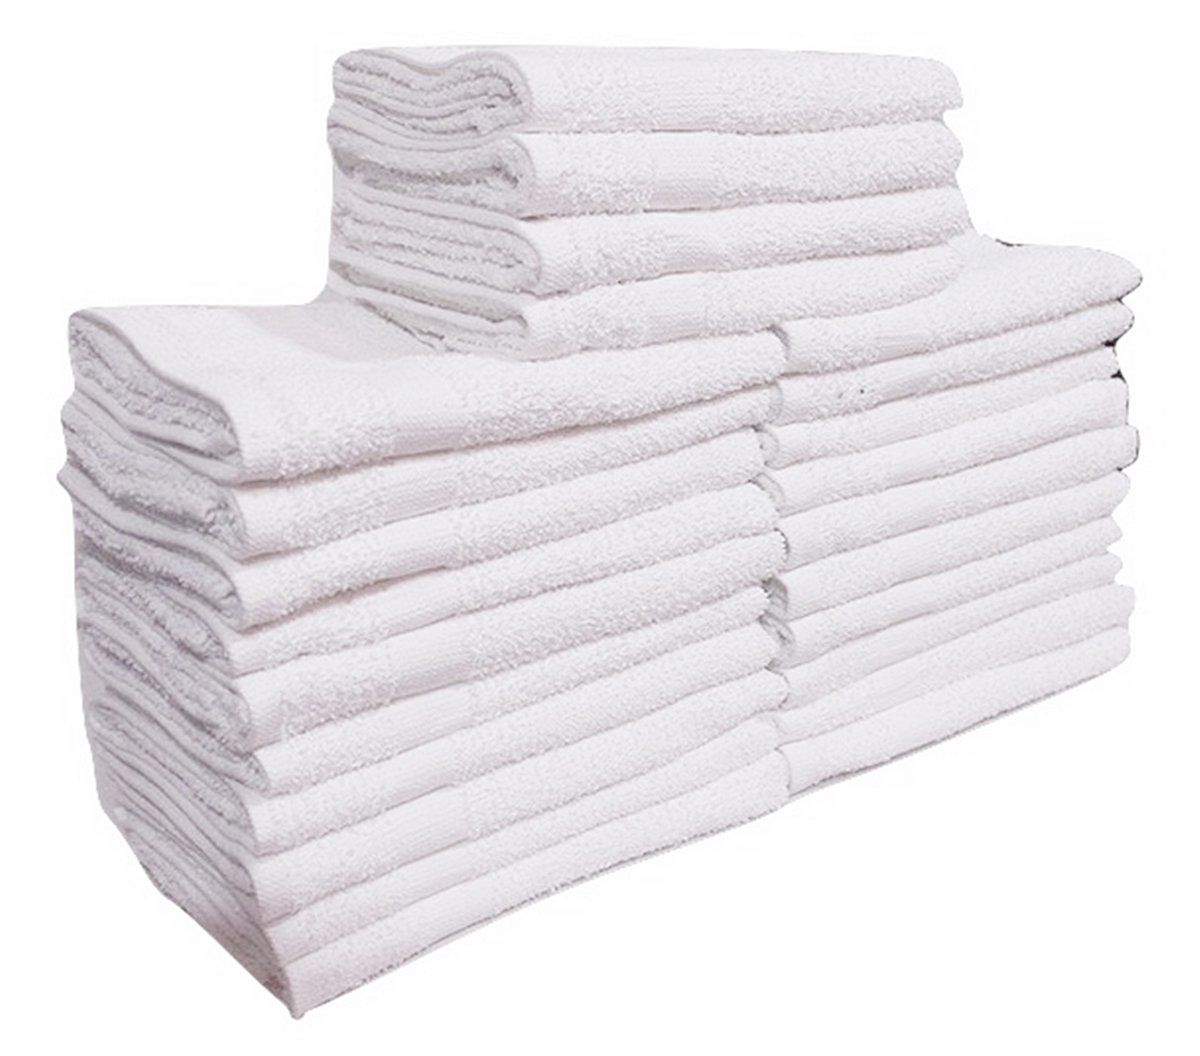 24 Pcs (2 Dozen) White 16''x27'' Pure Cotton Economy Hand Towels Salon/ Gym/ Hotel Super use Absorbent Best for Kitchen,Janitorial,home use Towels (100%